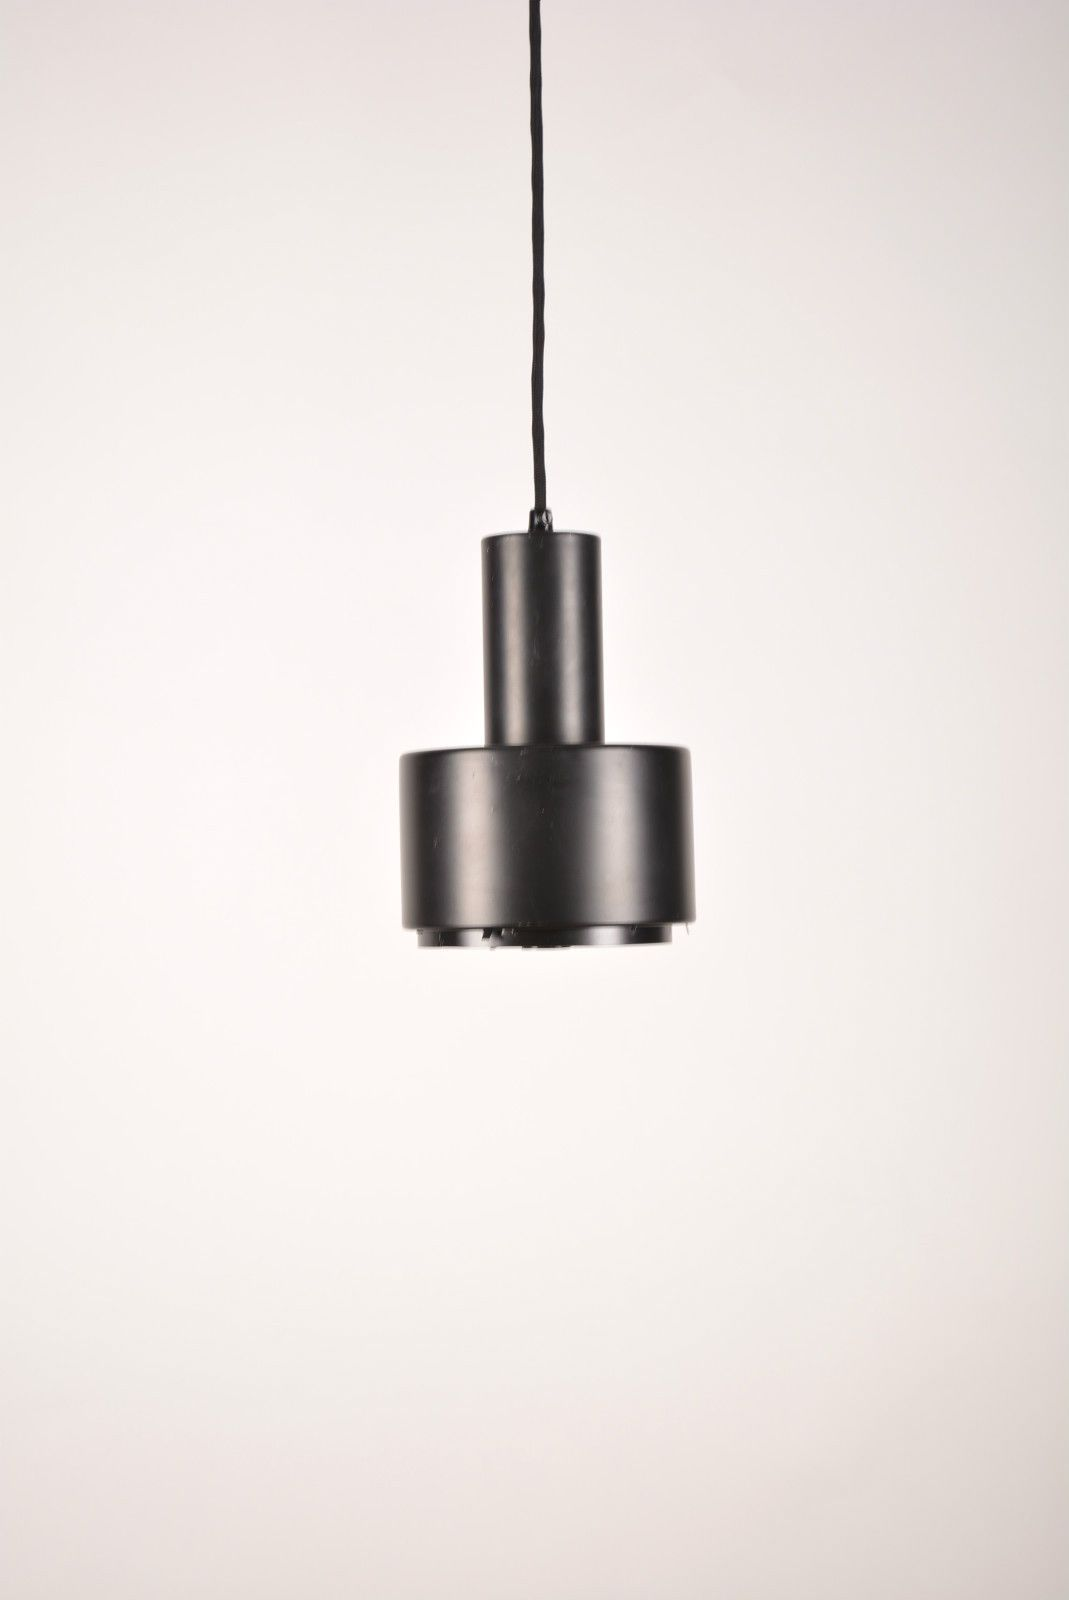 1v2 louis poulsen lamp danish design pendant lamp 6070 aalto lyfa 1v2 louis poulsen lamp danish design pendant lamp 6070 aalto lyfa fog mozeypictures Image collections